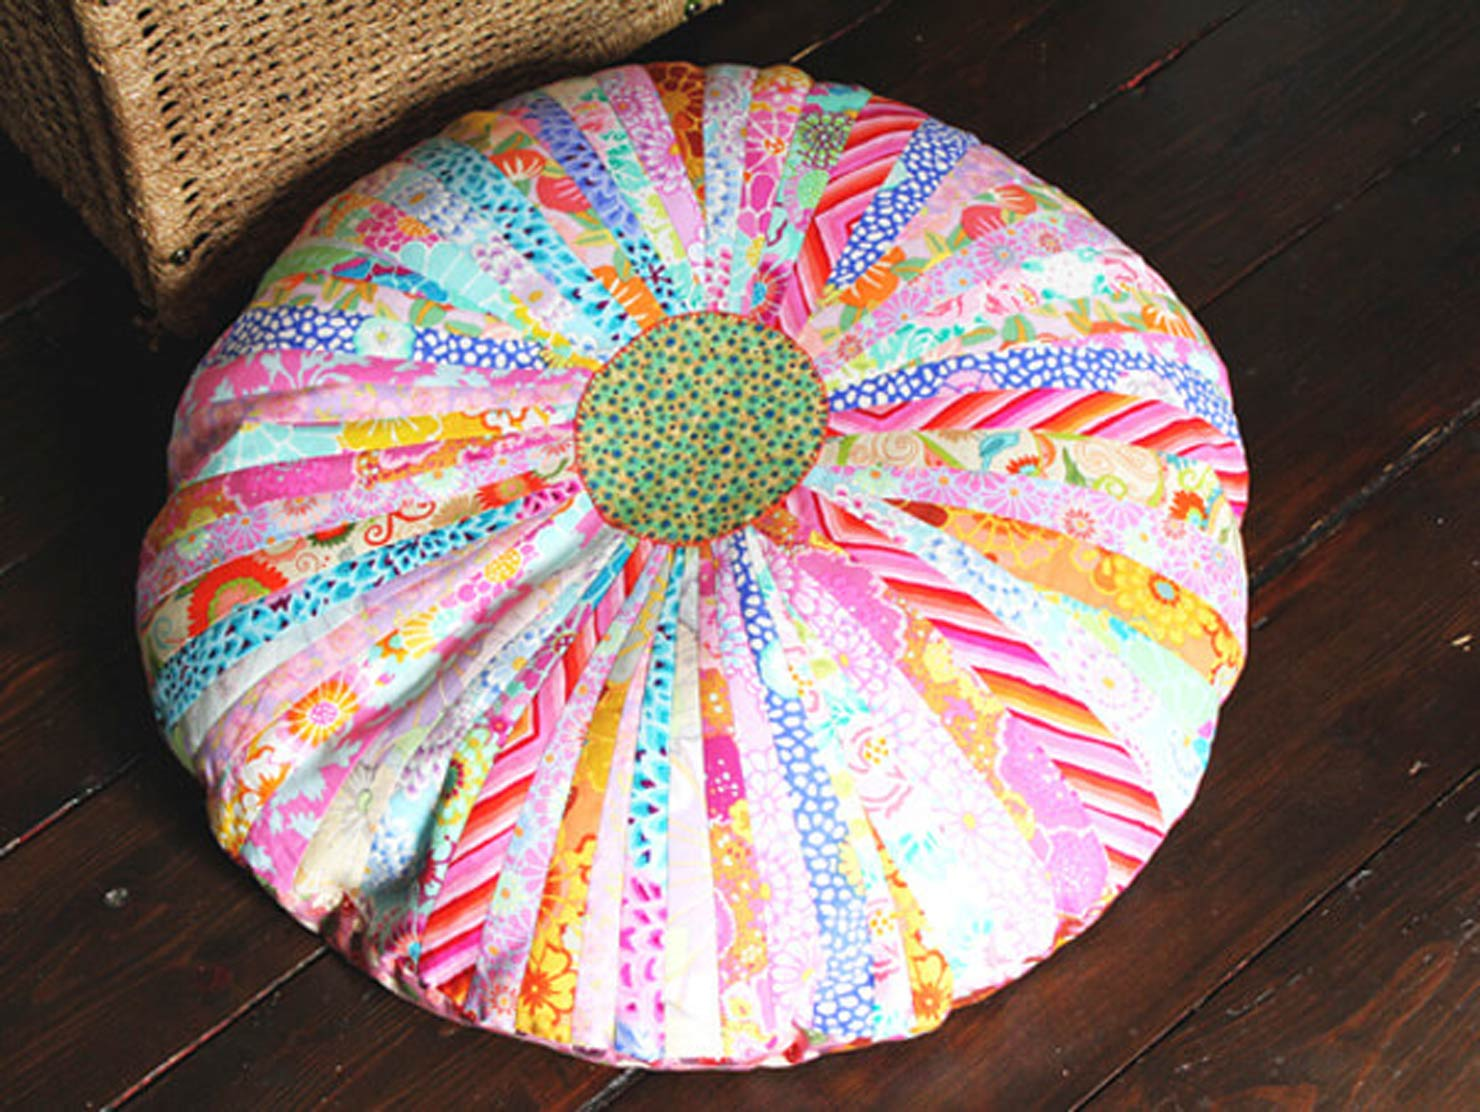 a bean bag made with colorful fabrics.